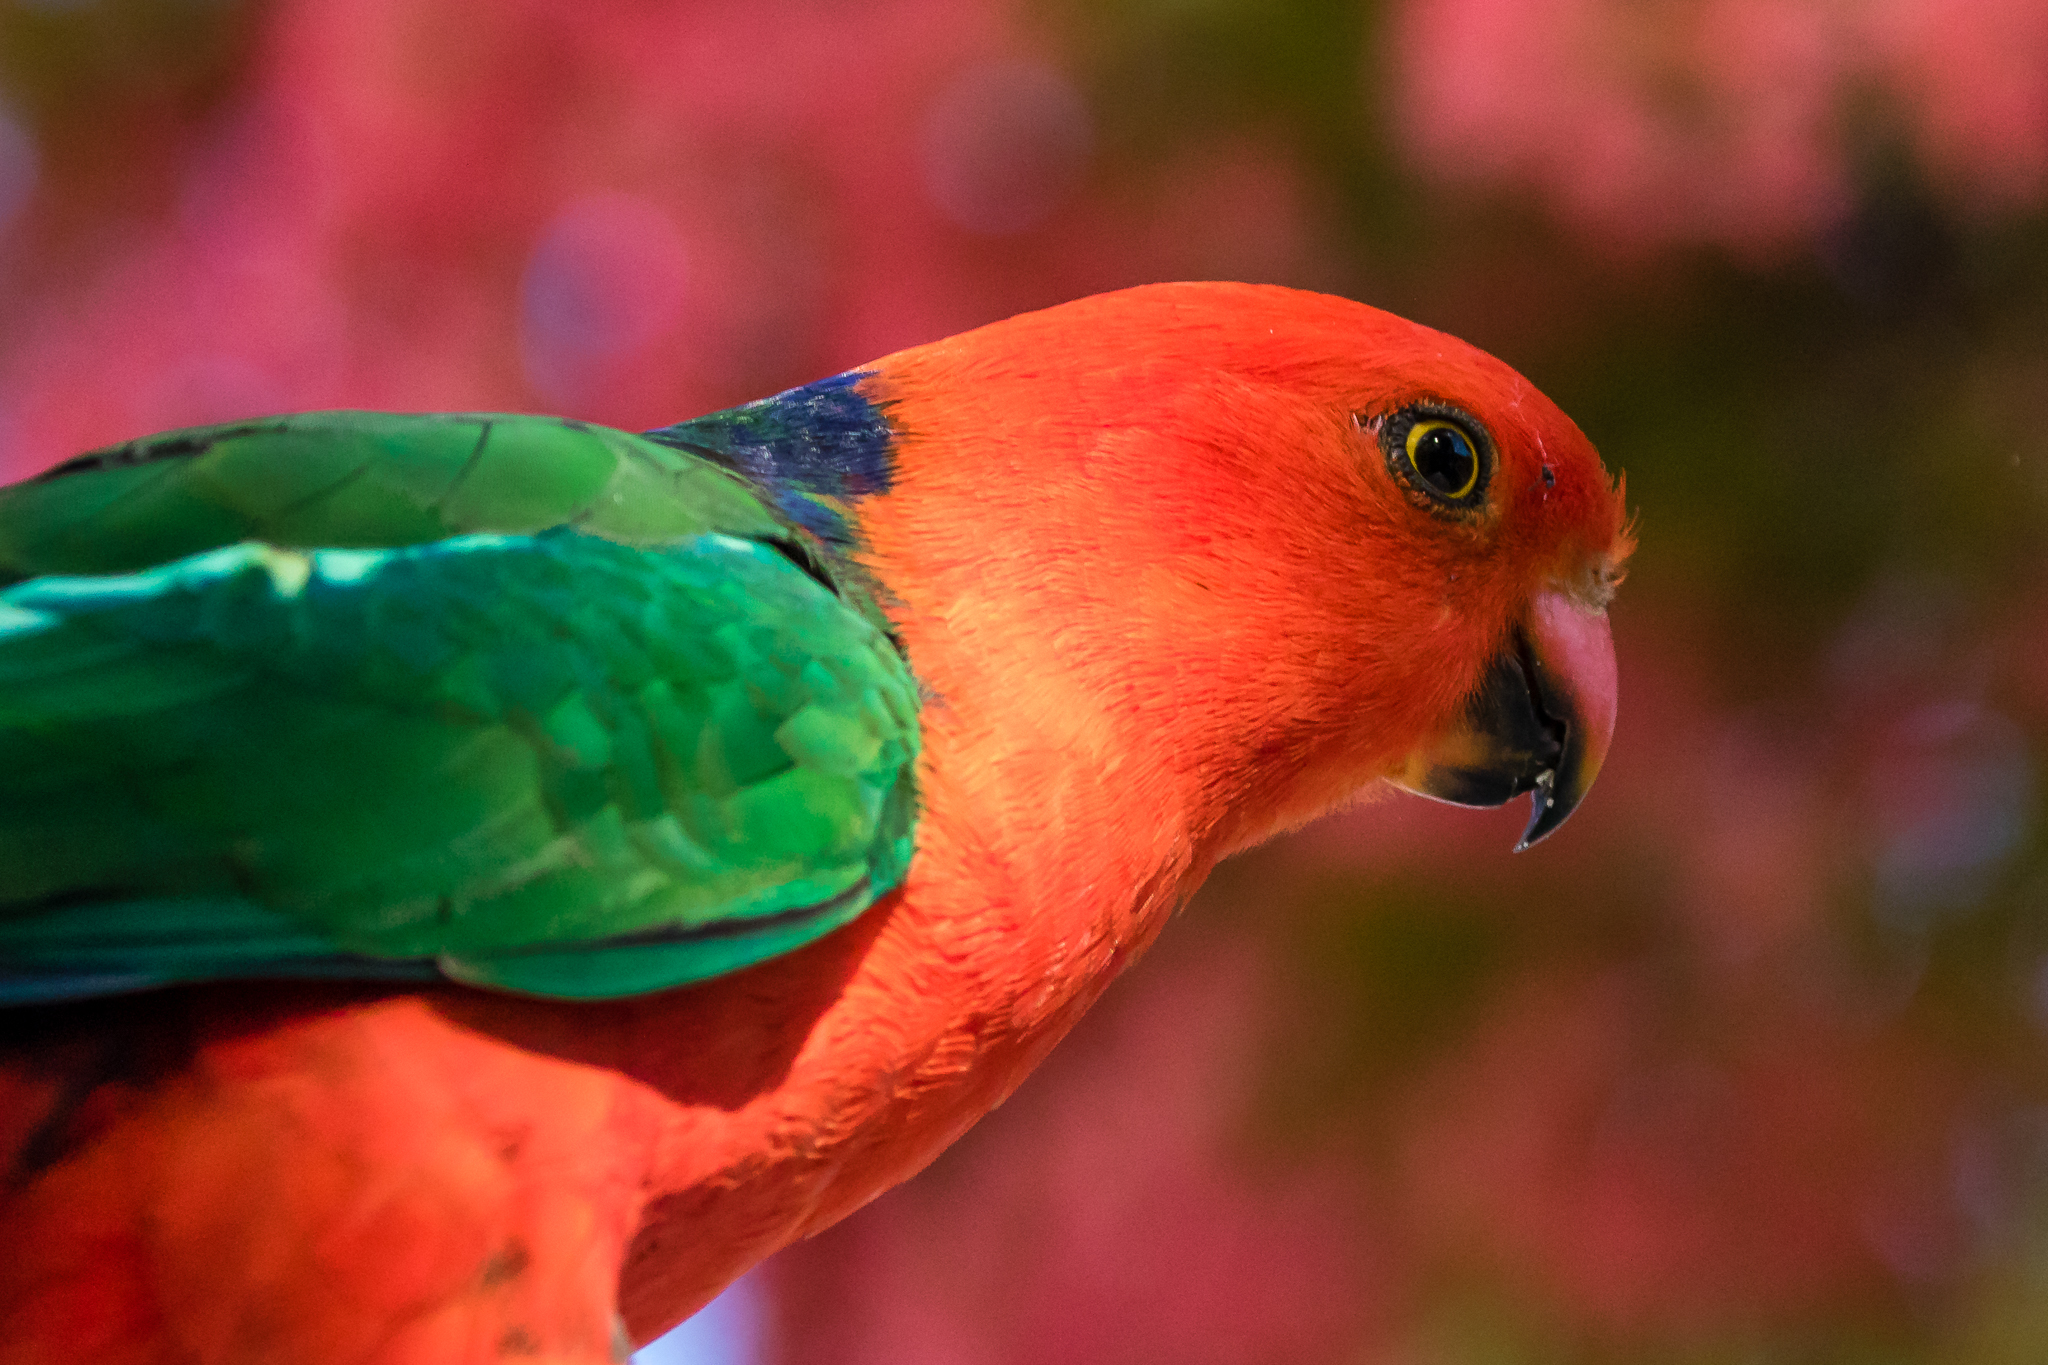 This beautiful male Australian King-Parrot also lives in the woodlands and rainforests of Australia's east coast.